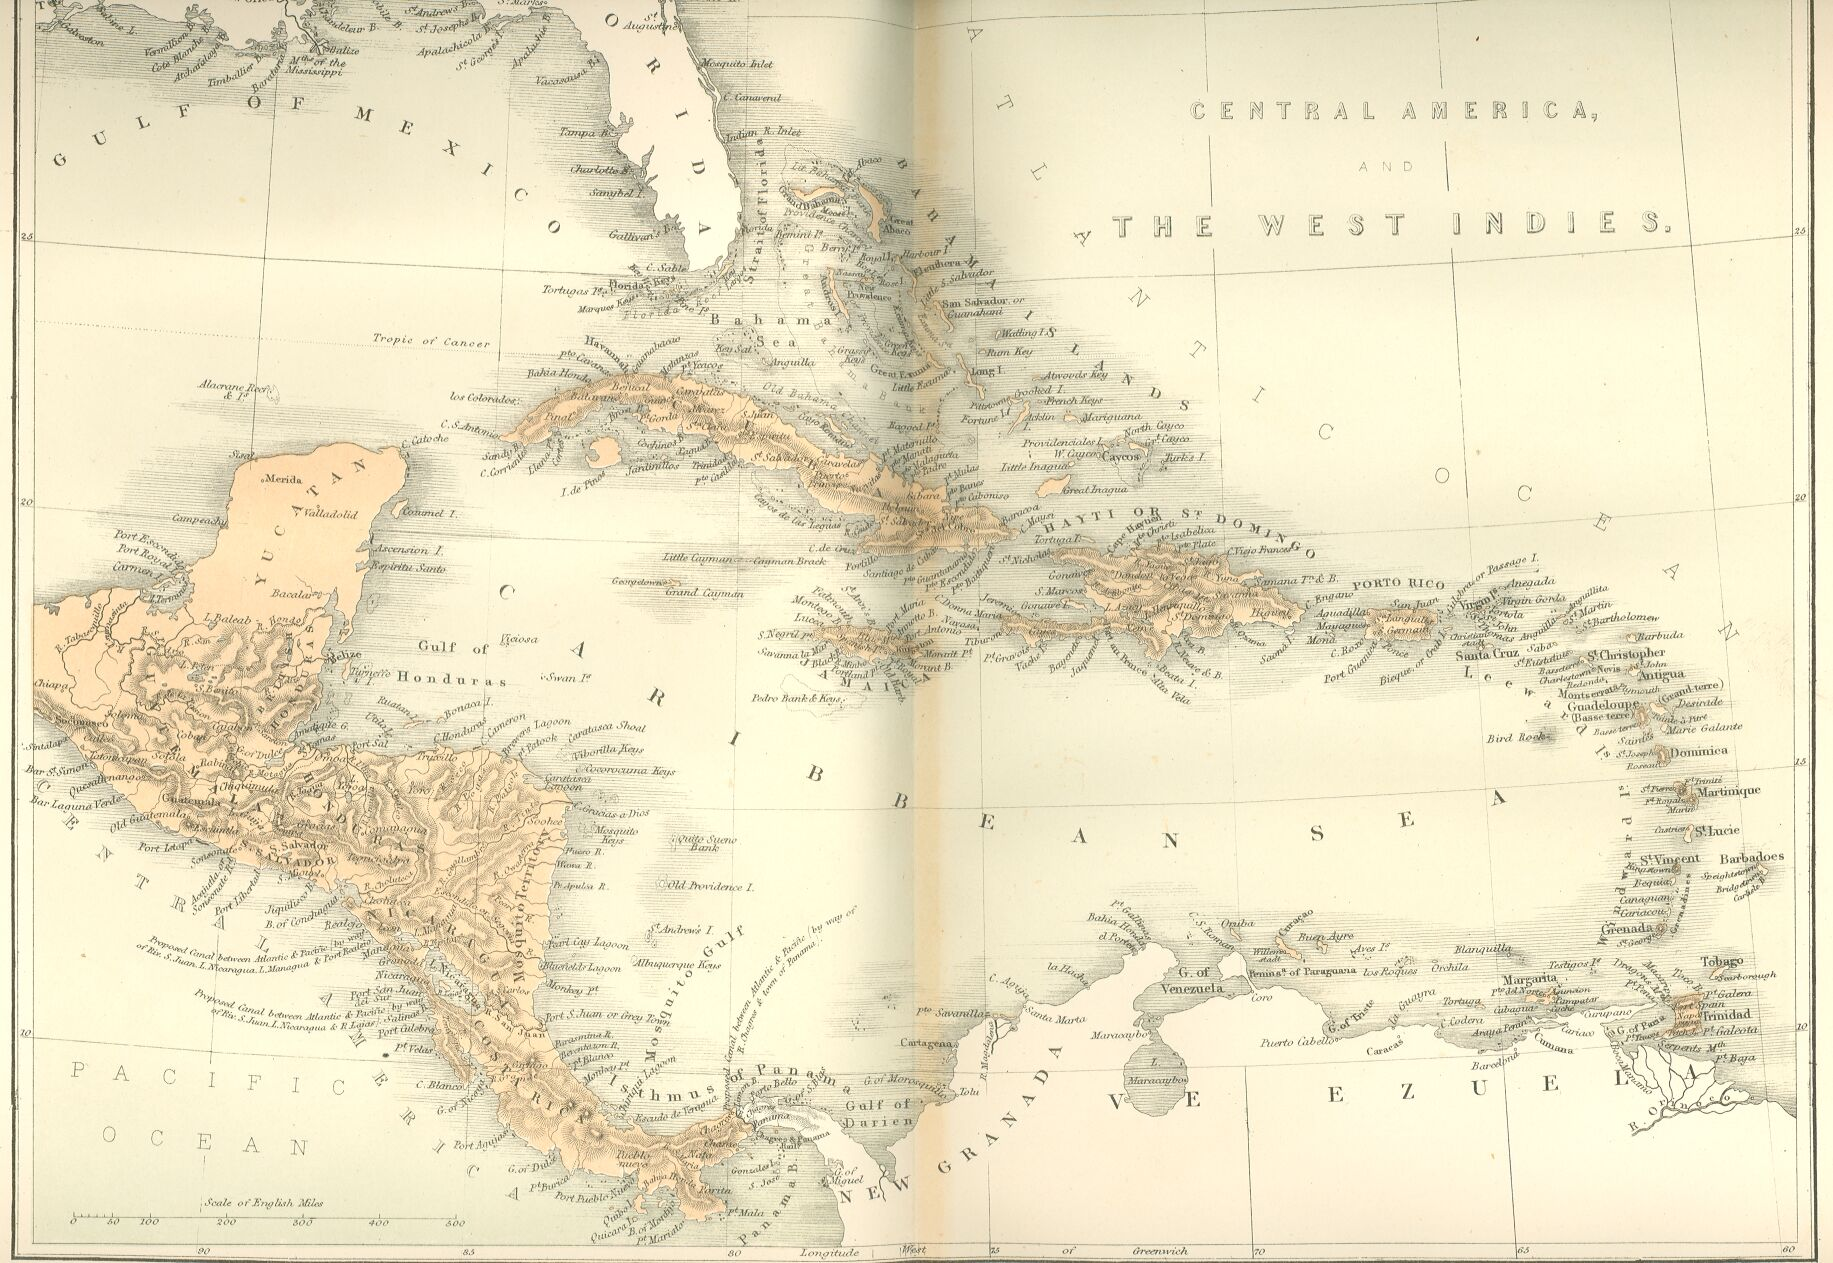 West Indies In West Indies Central America West - West indies central america 1763